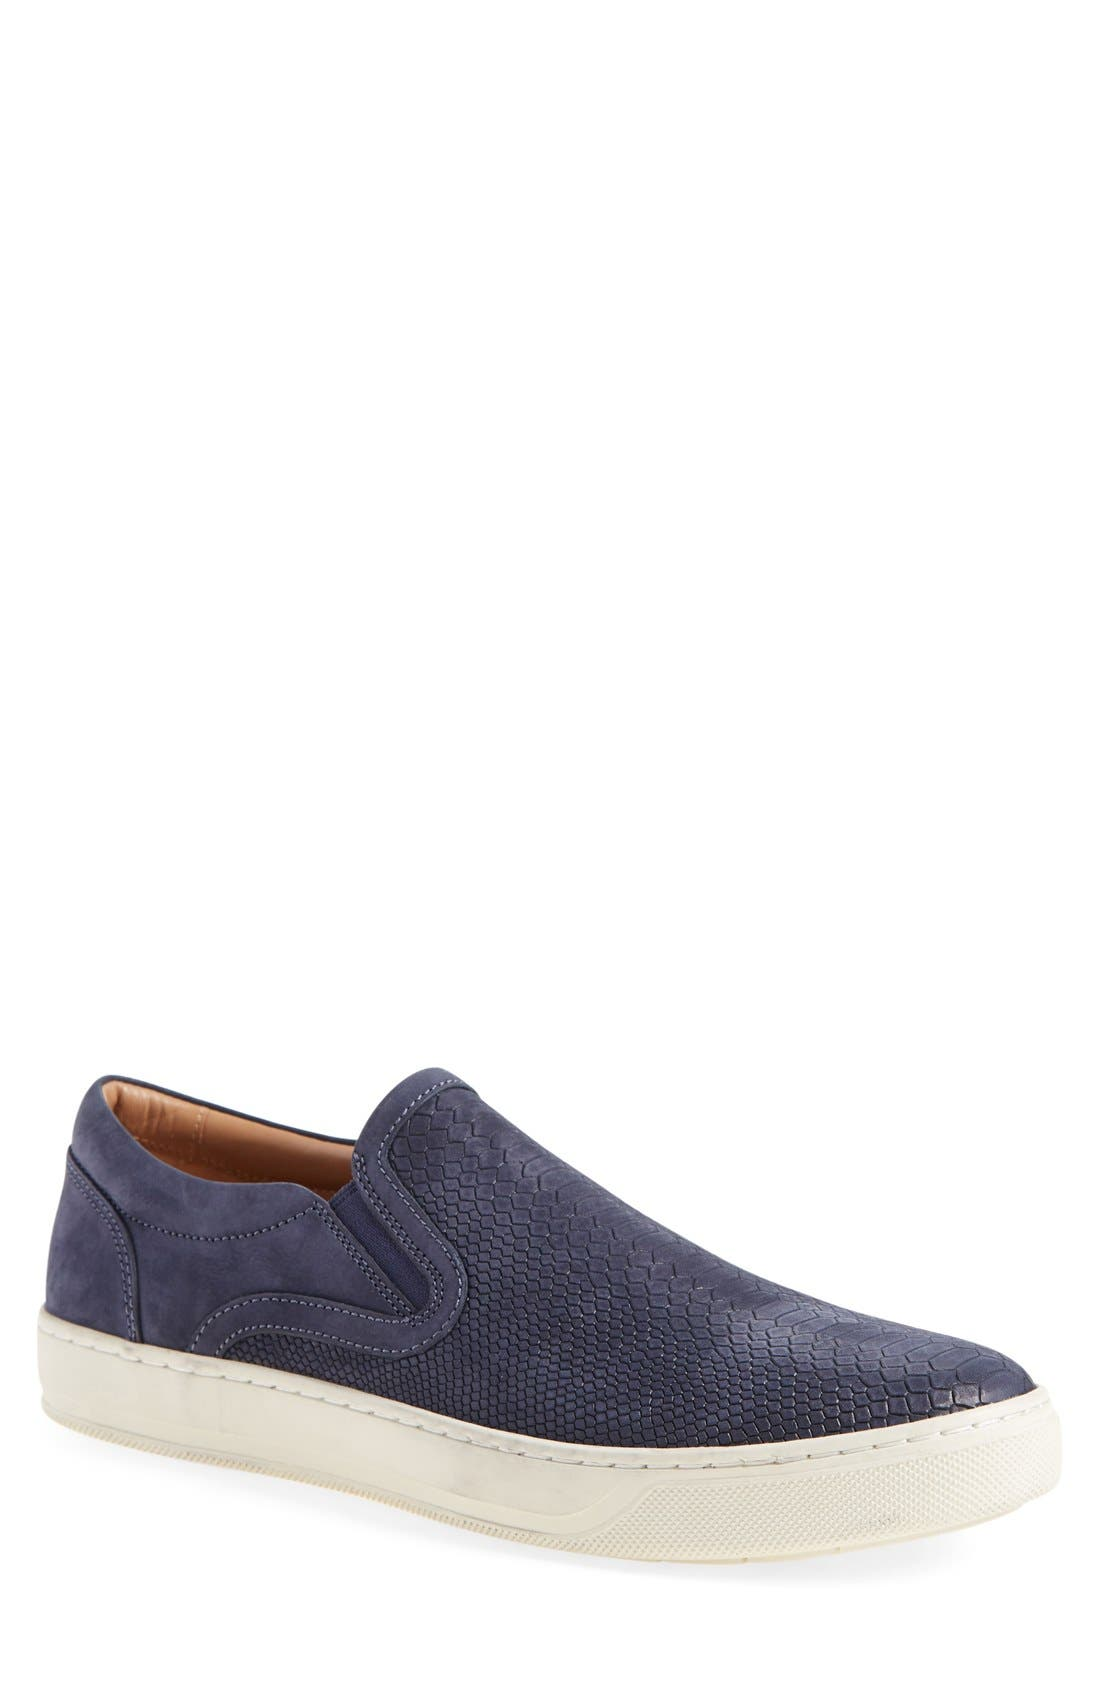 'Ace' Slip-On,                             Main thumbnail 1, color,                             Navy Leather